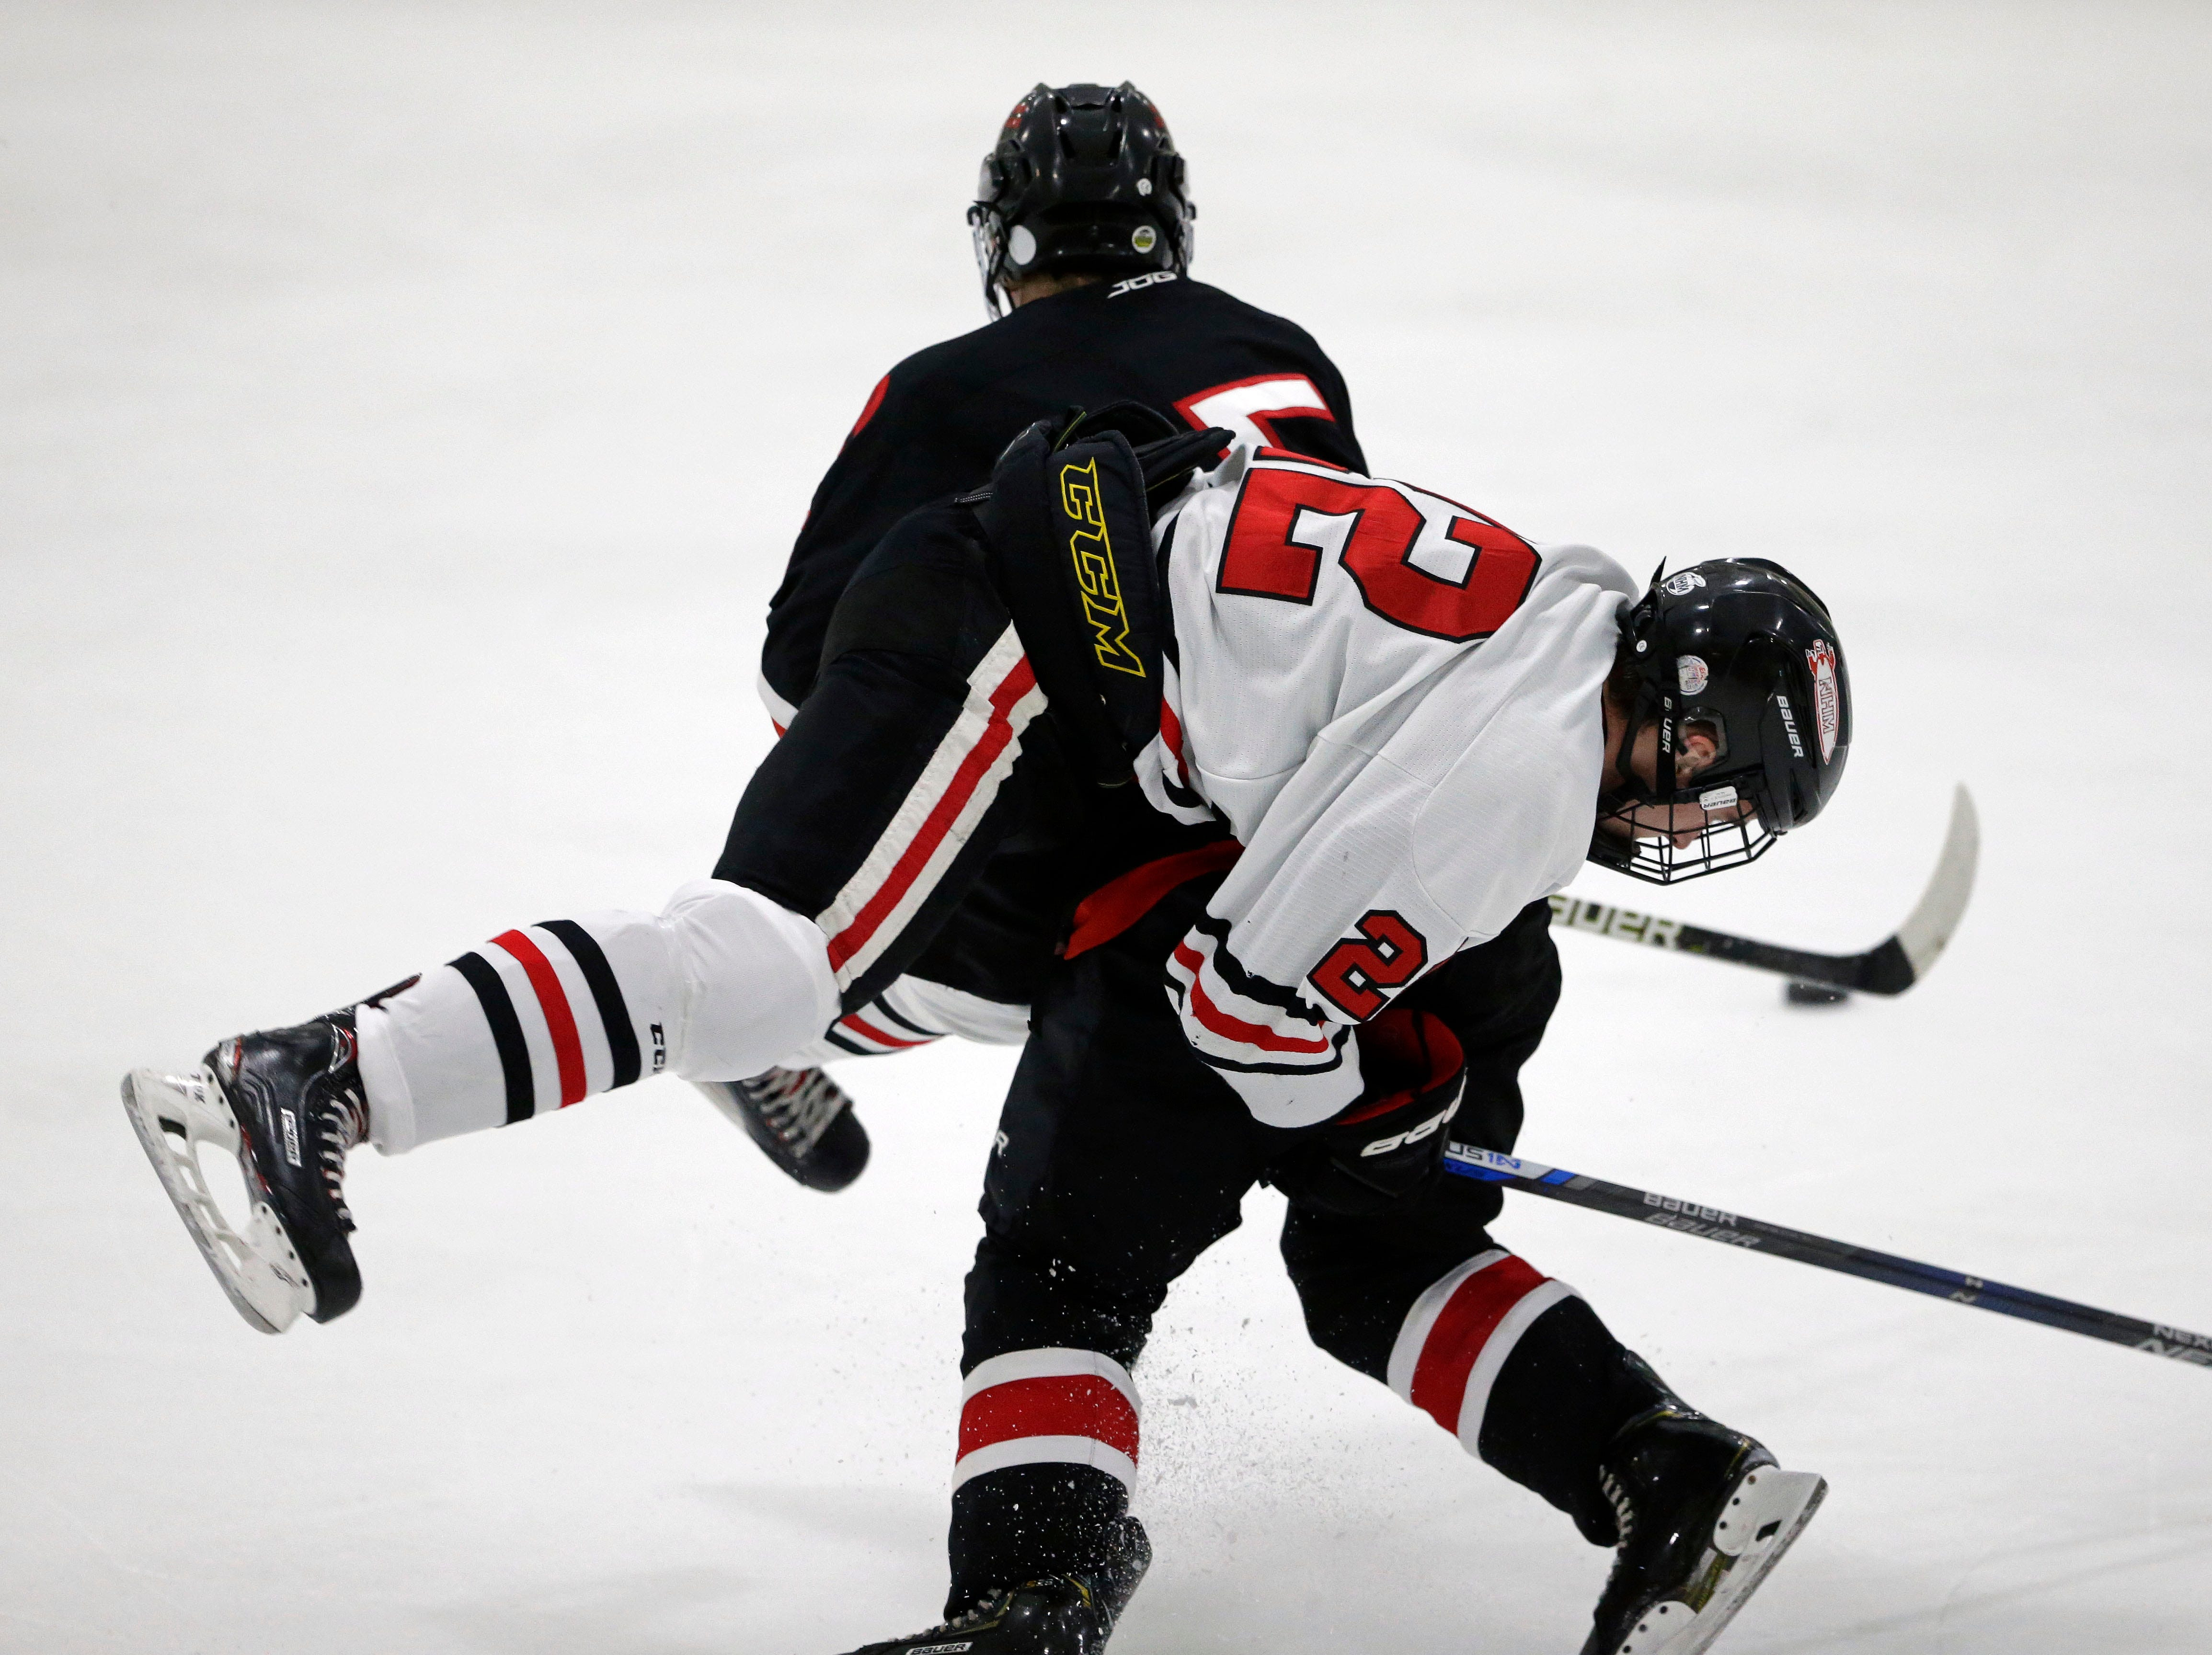 Mason Marquardt of Neenah/Hortonville/Menasha gets tangled with Andrew Grebe of Oshkosh in a Badgerland Conference hockey game Tuesday, December 4, 2018, at Tri-County Ice Arena in Fox Crossing, Wis.Ron Page/USA TODAY NETWORK-Wisconsin